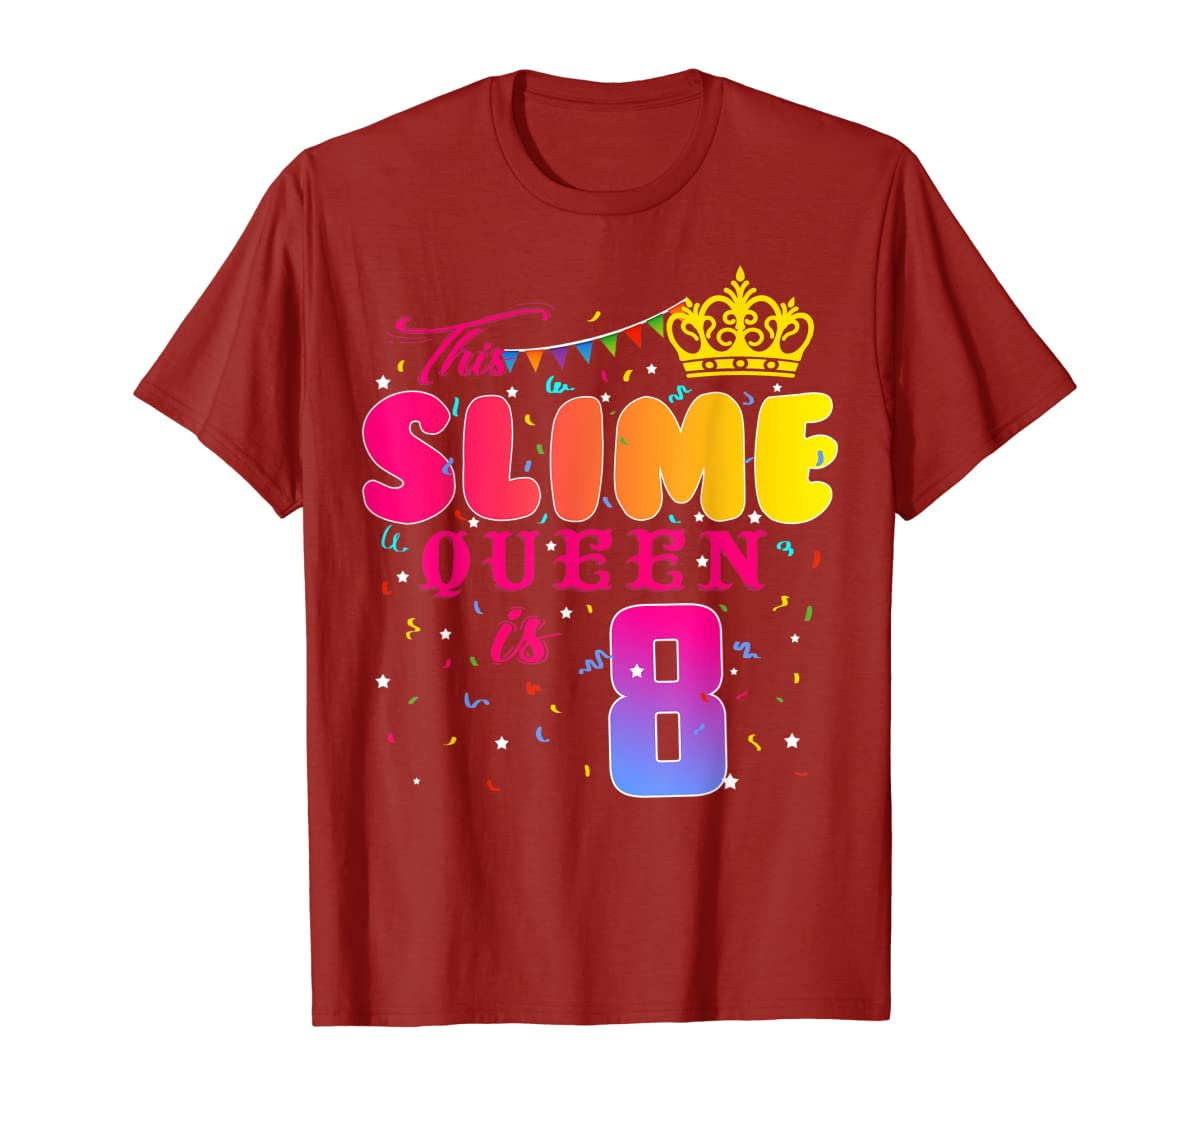 8 Years Old 8th Birthday Slime Queen Shirt Girl Gift Party-Men's T-Shirt-Red